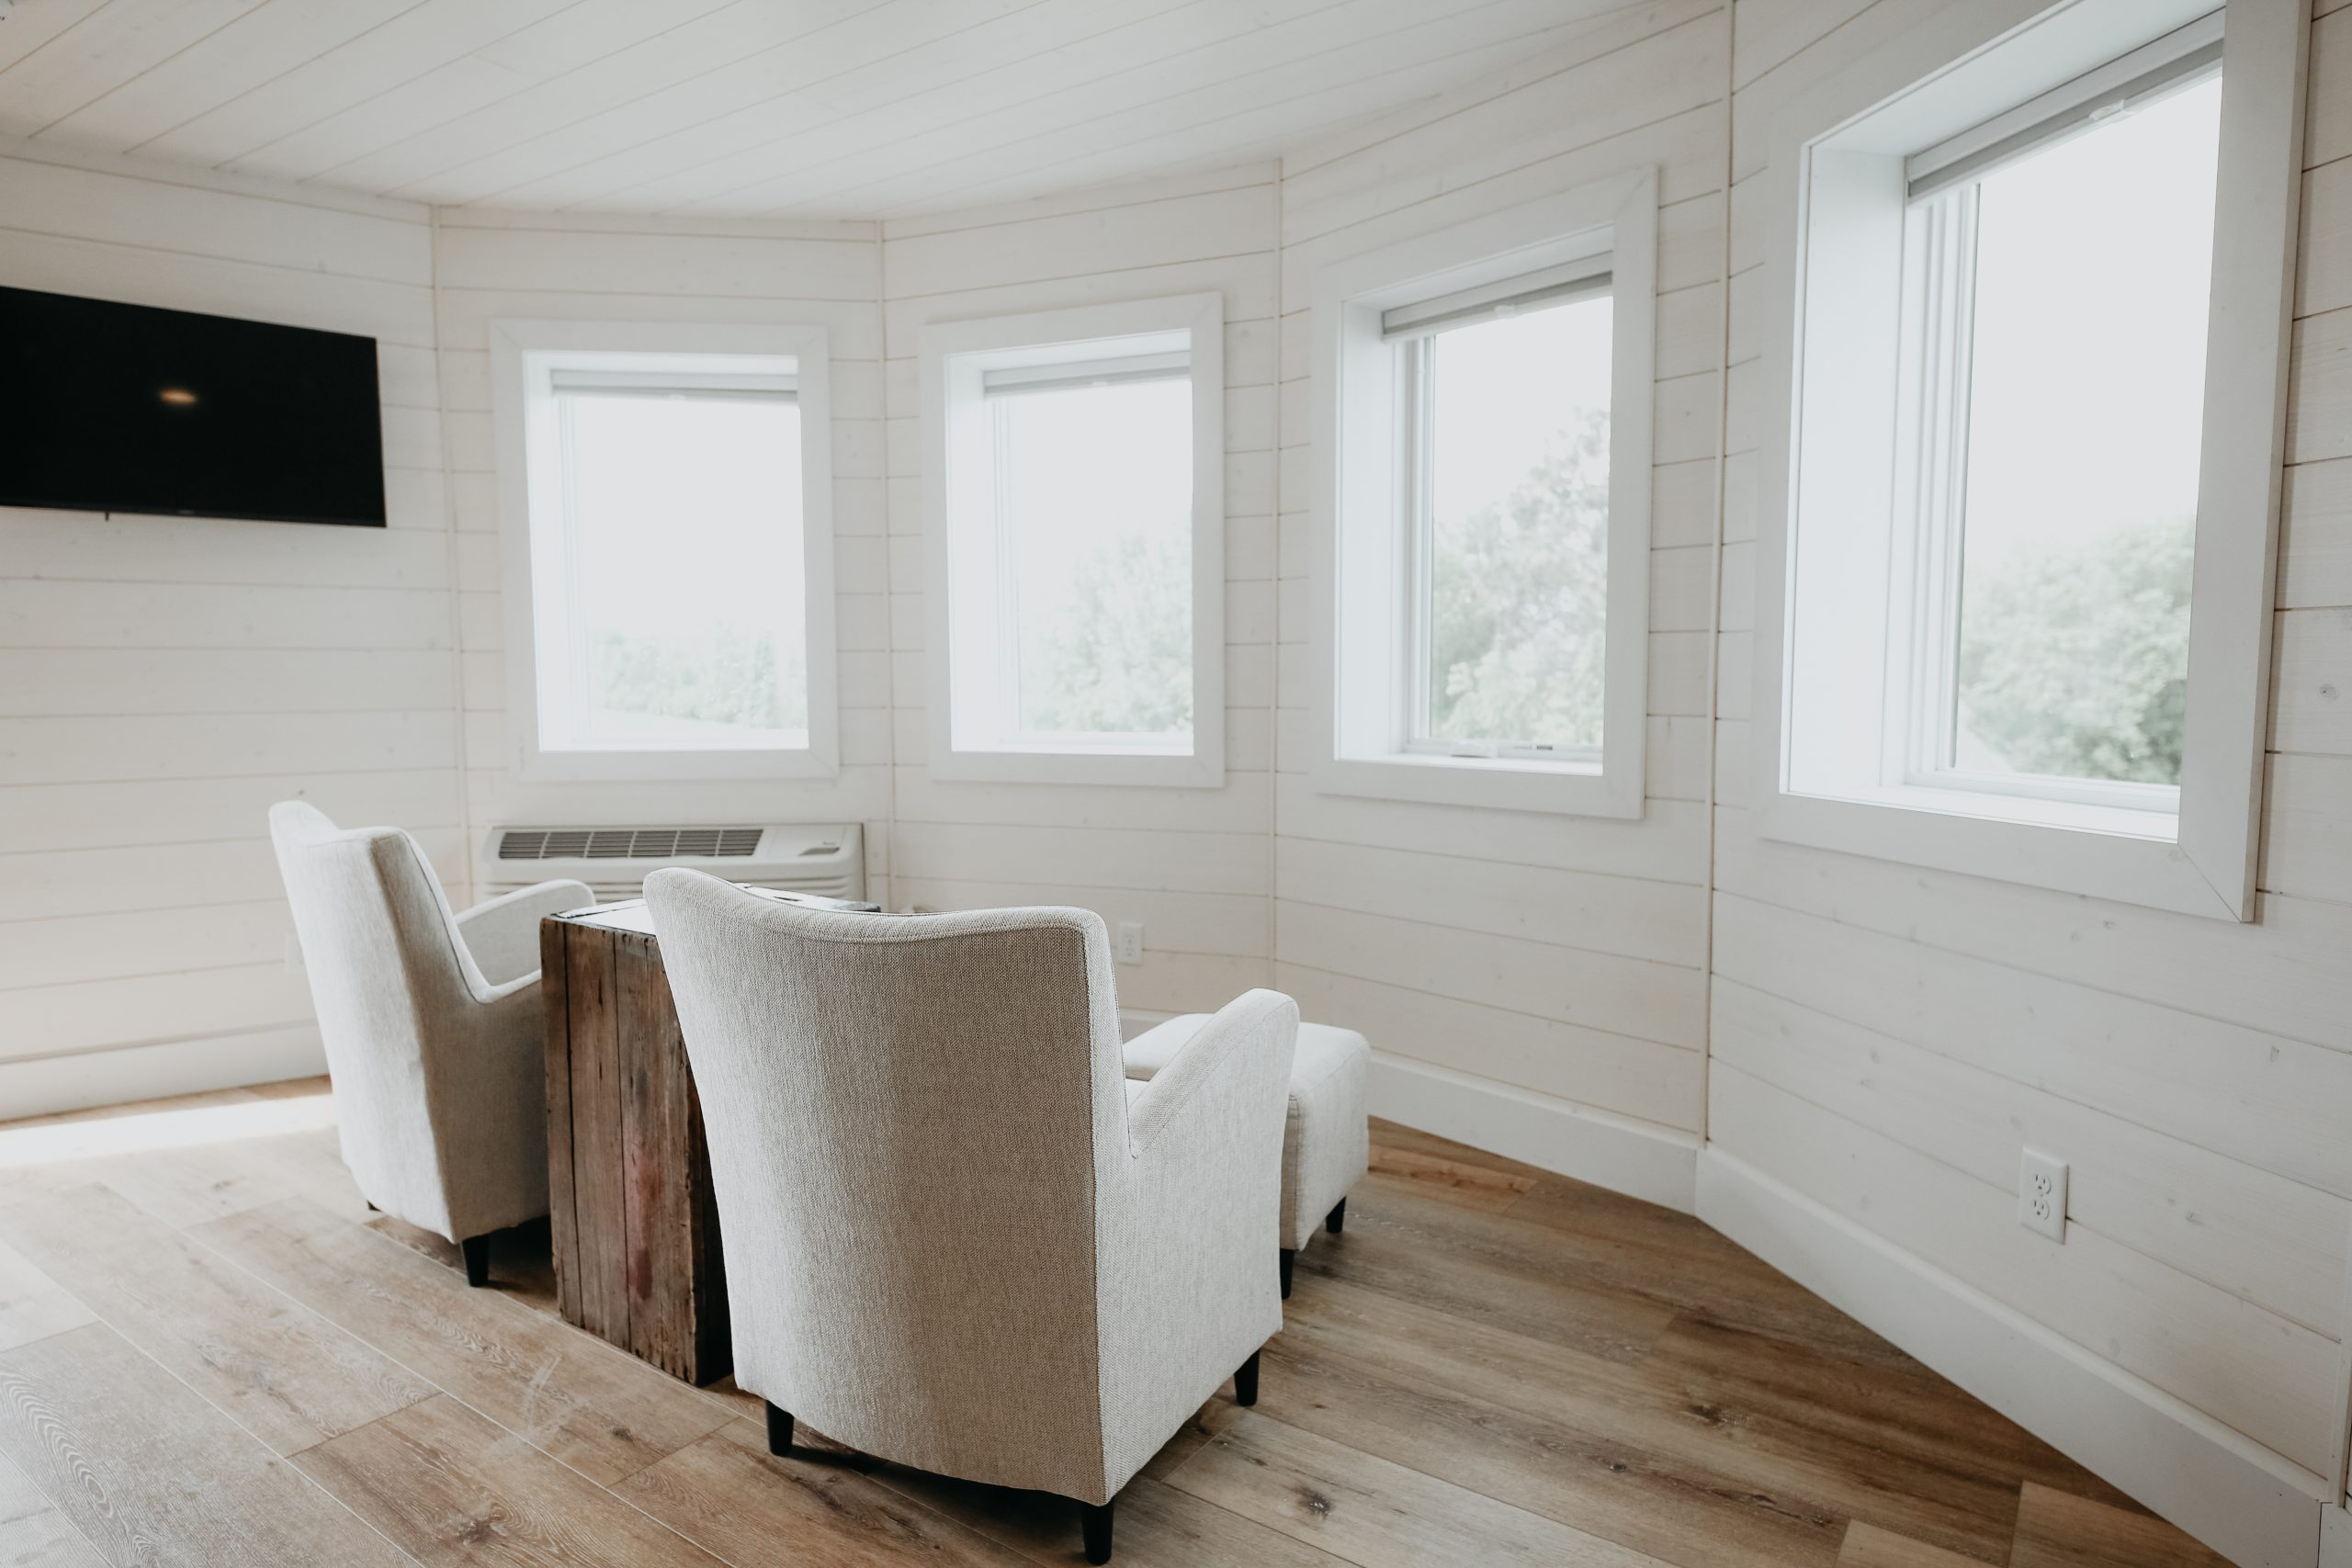 You enter into a small, circular (obviously) room, with chairs oriented toward not the flat-screen TV but the windows, which look out over a small lake, a tiny shed, and conifers.